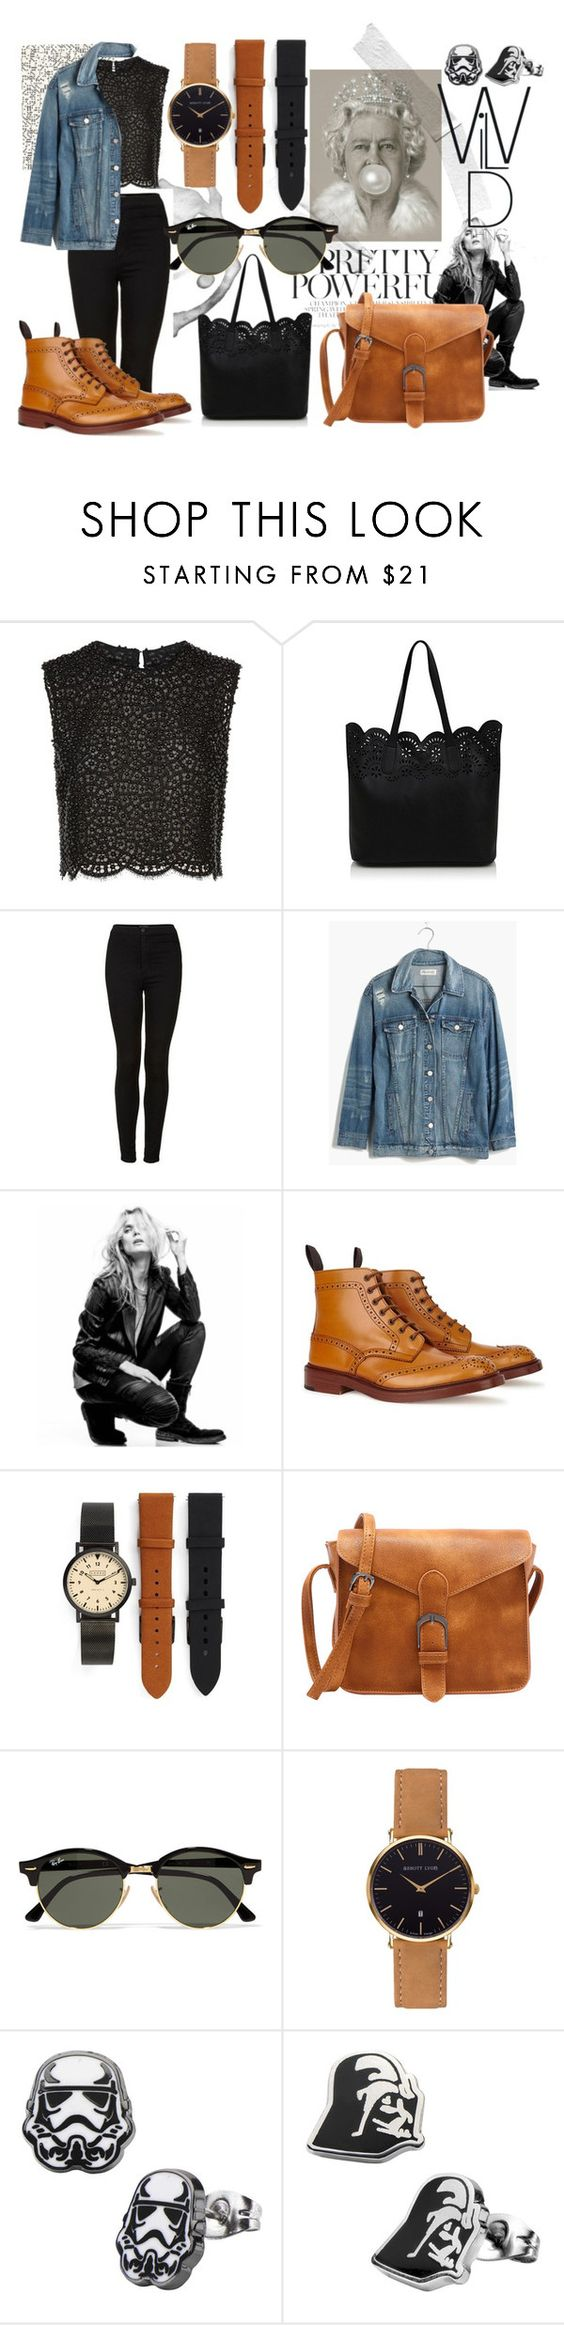 """""""rock save the queen"""" by laura-gd ❤ liked on Polyvore featuring Costarellos, George, Topshop, Madewell, Superfine, Shore Projects, Ray-Ban and Abbott Lyon"""